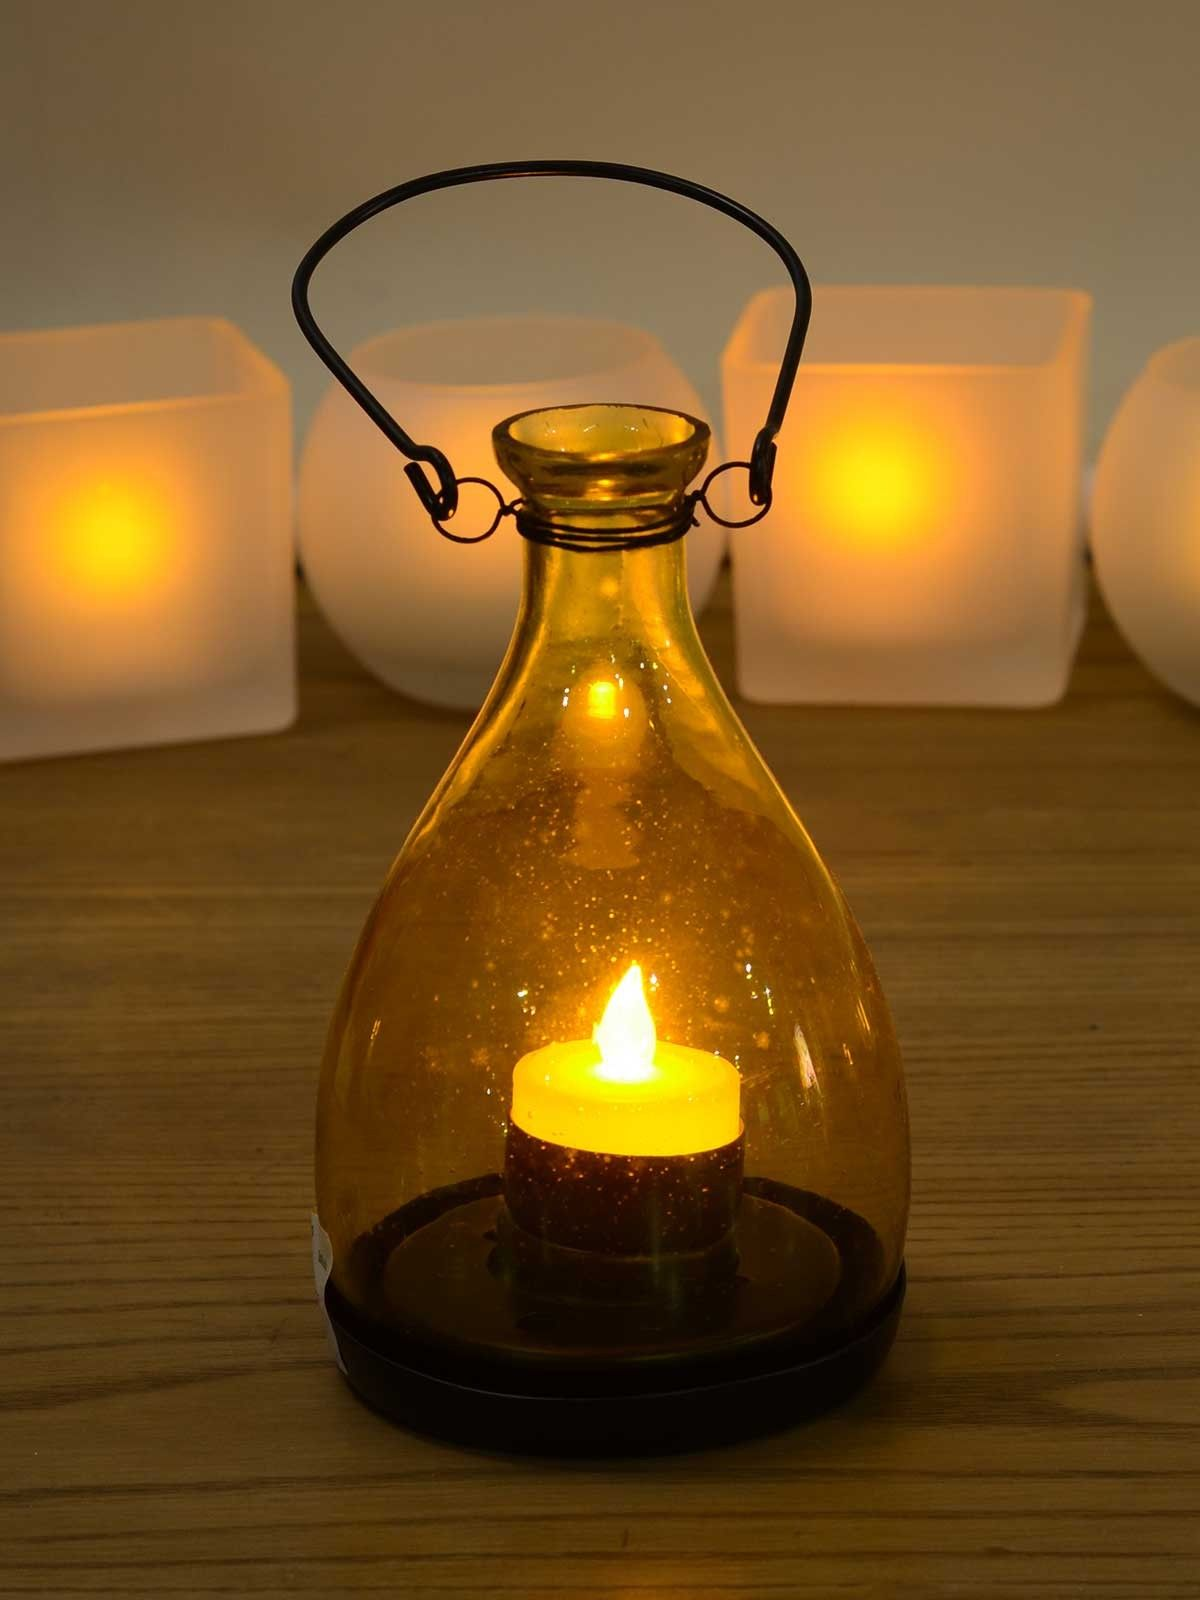 Yellow Amber Glass Vintage Lantern - 3 x 4 Inches